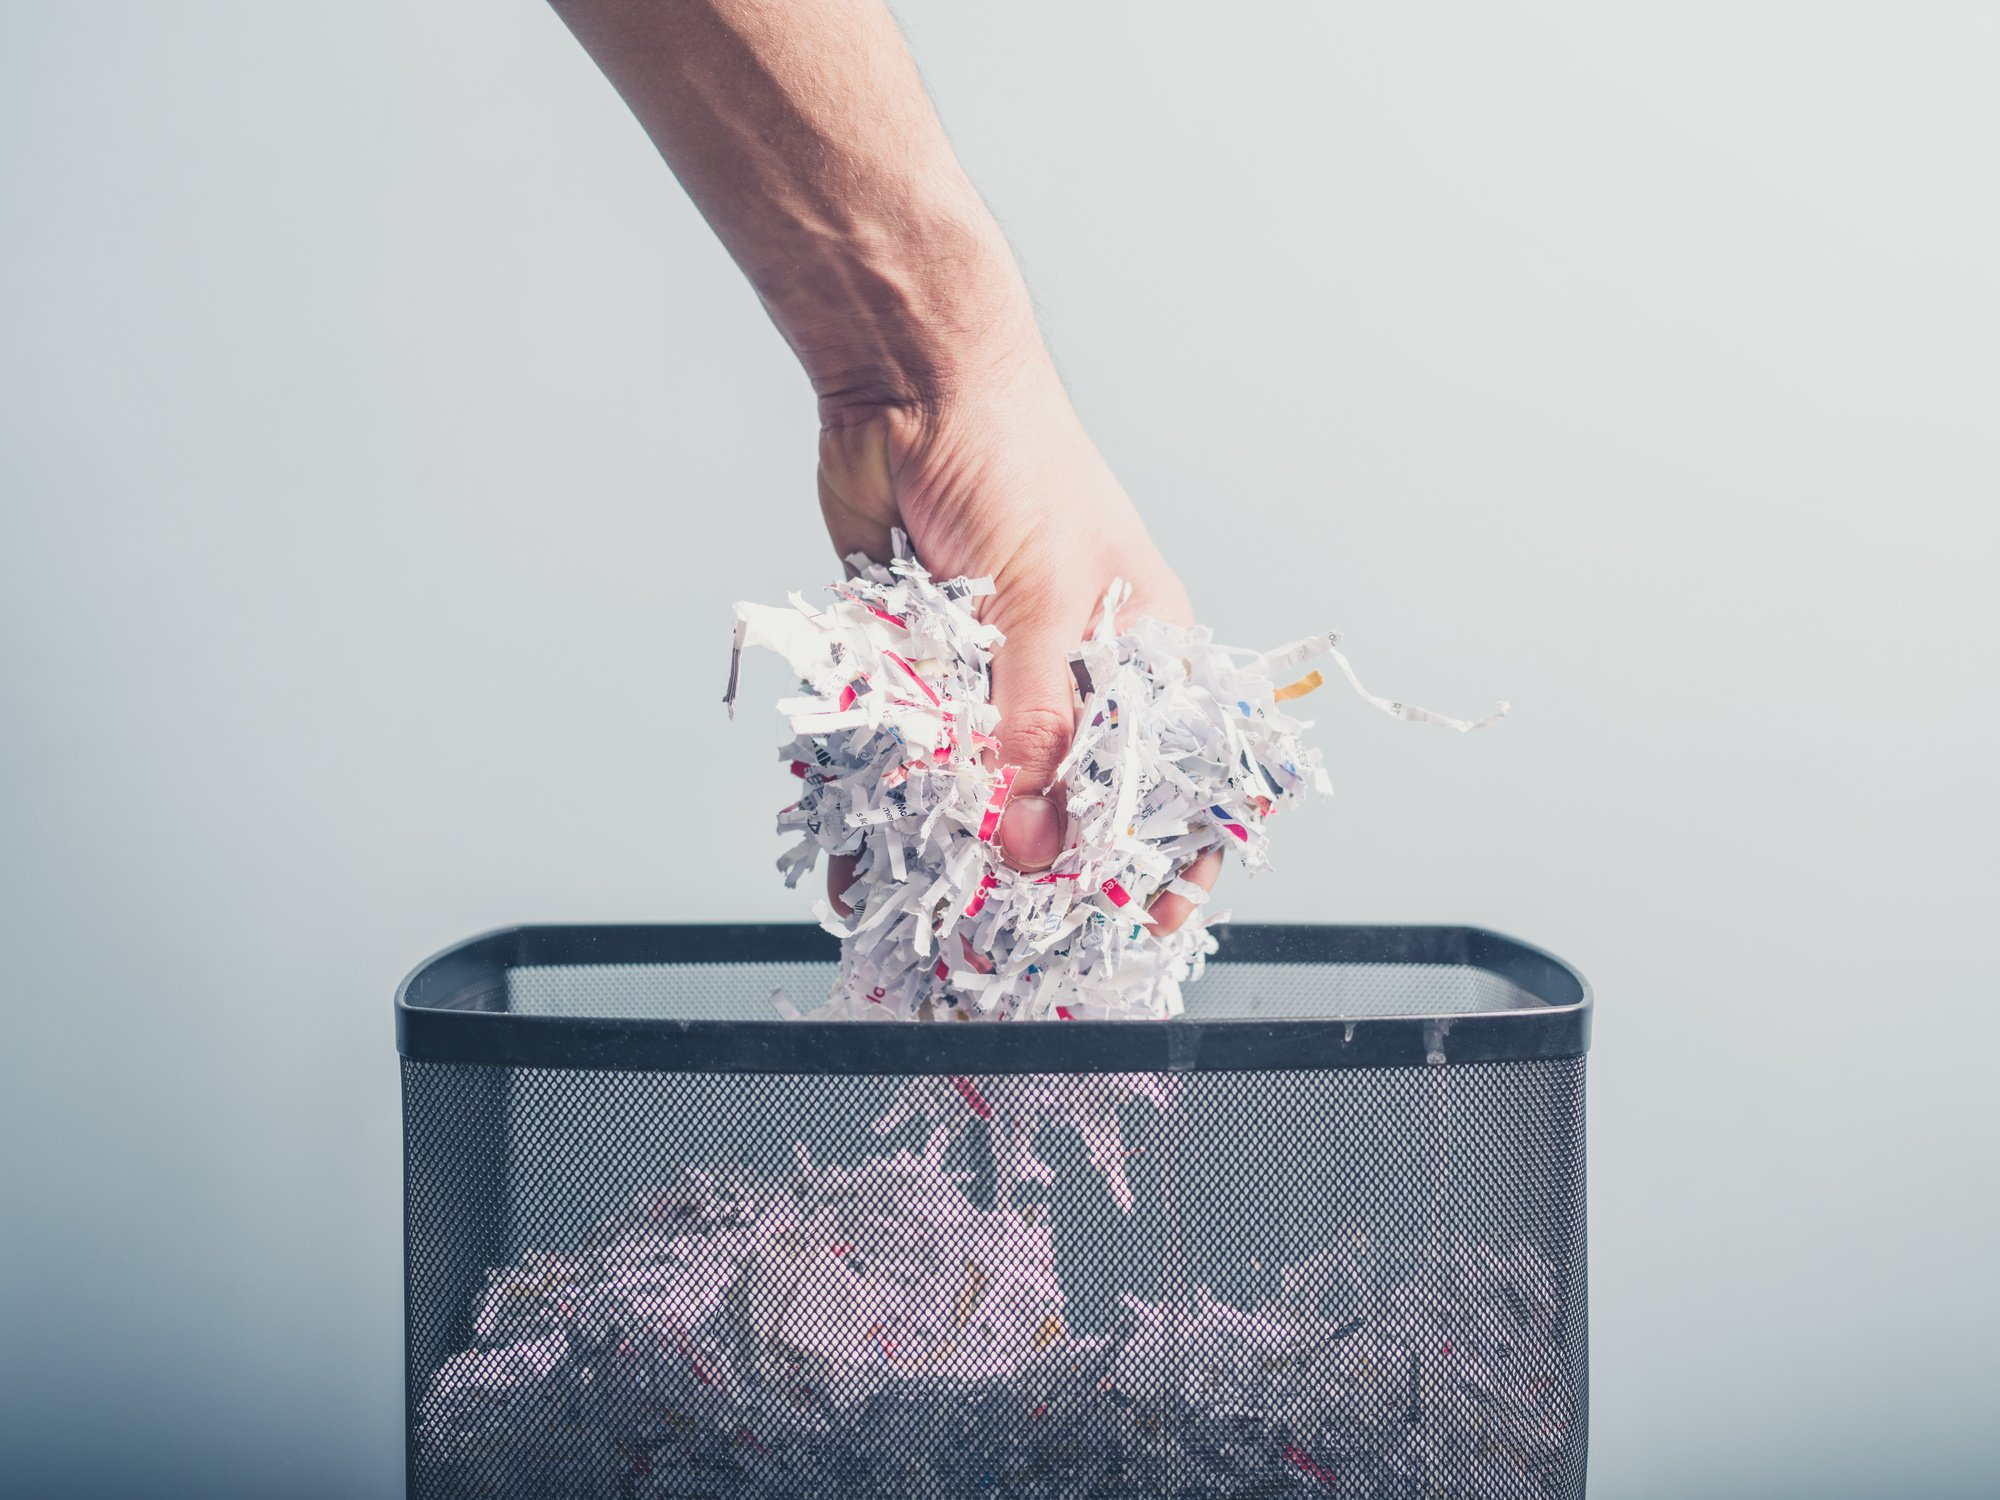 A hand is putting a bunch of shredded paper in a waste paper basket